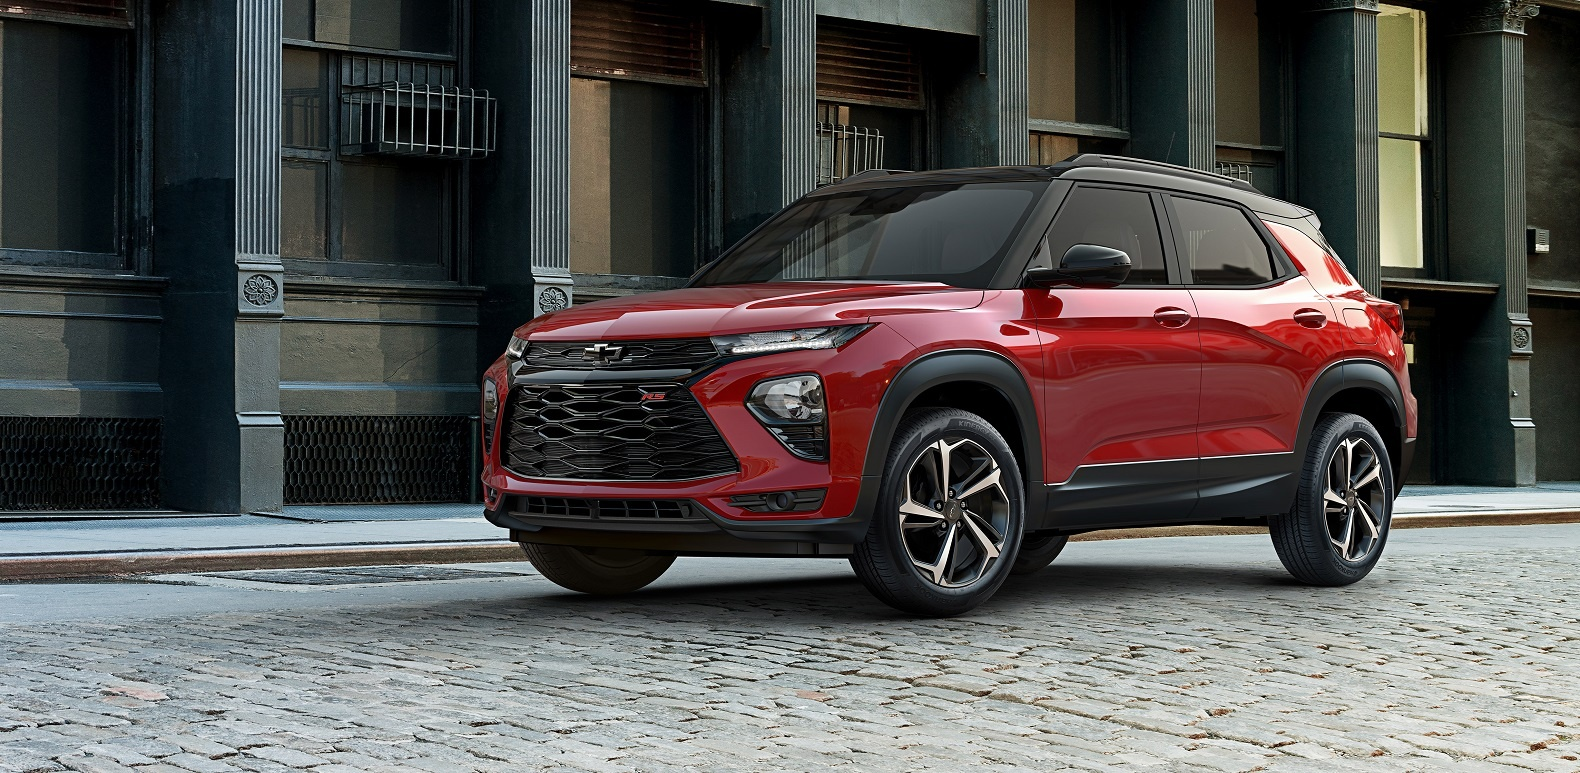 2021 Chevy Trailblazer adds another crossover to the ...